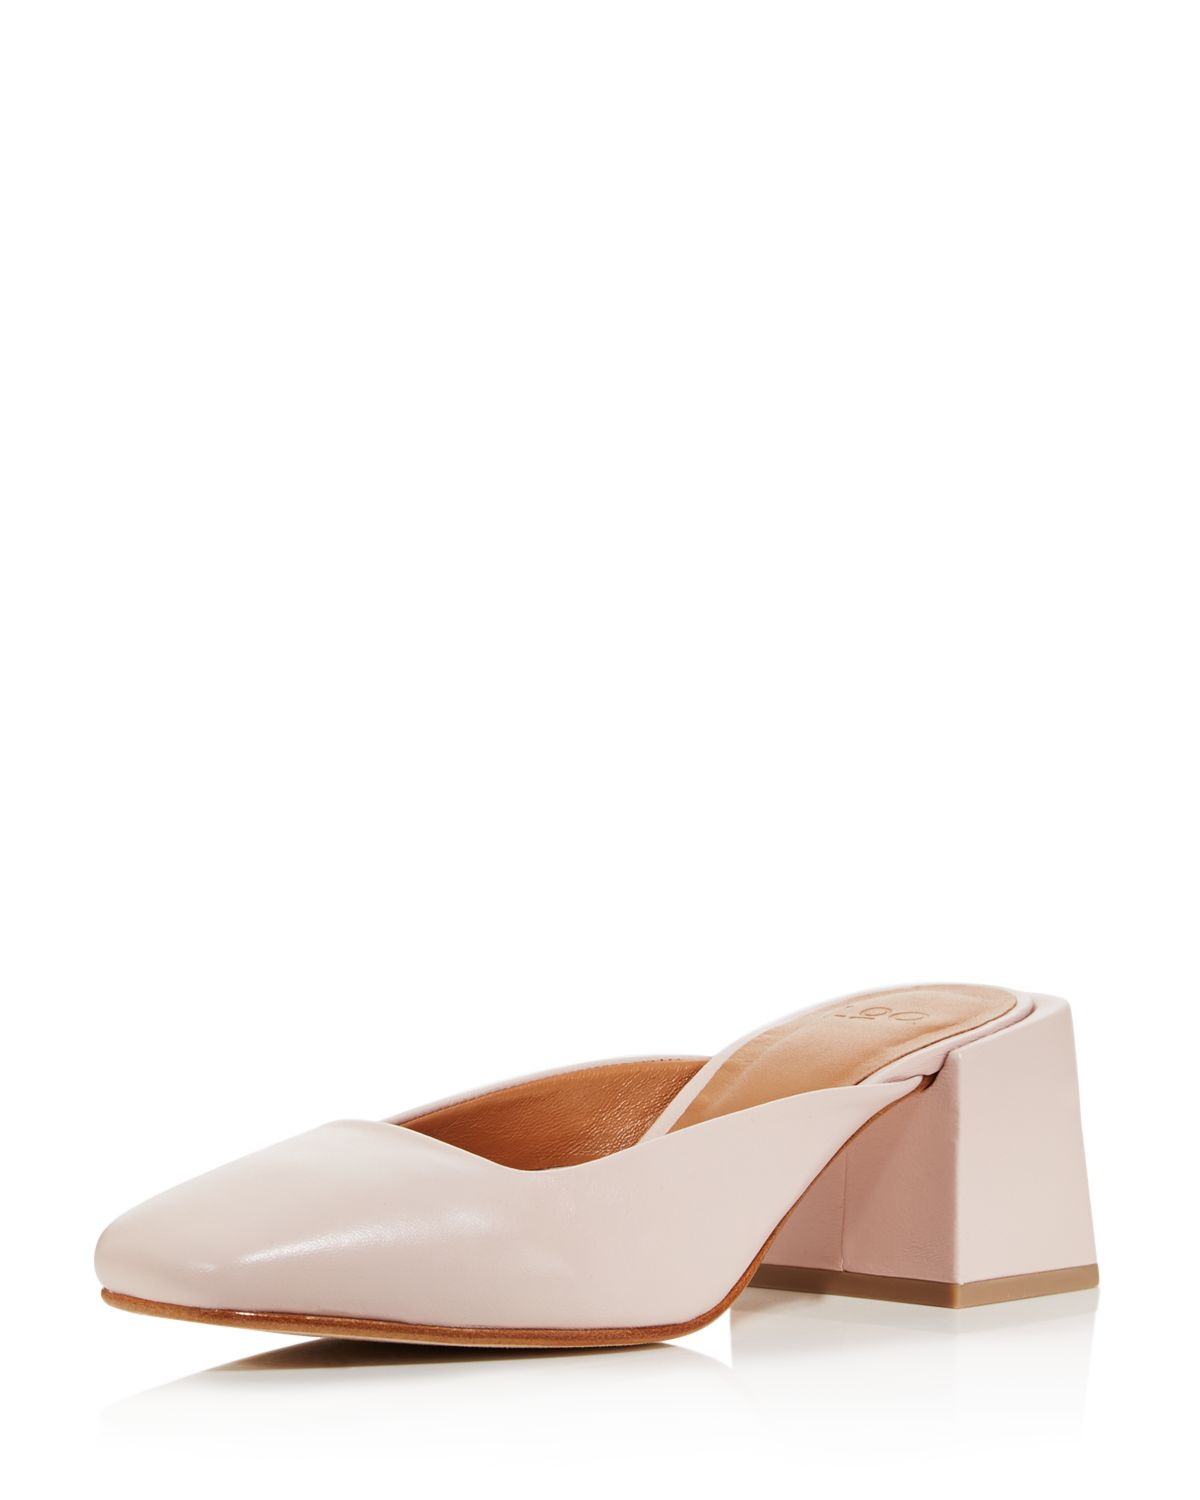 LOQ Women's Leather Square Heel Mules